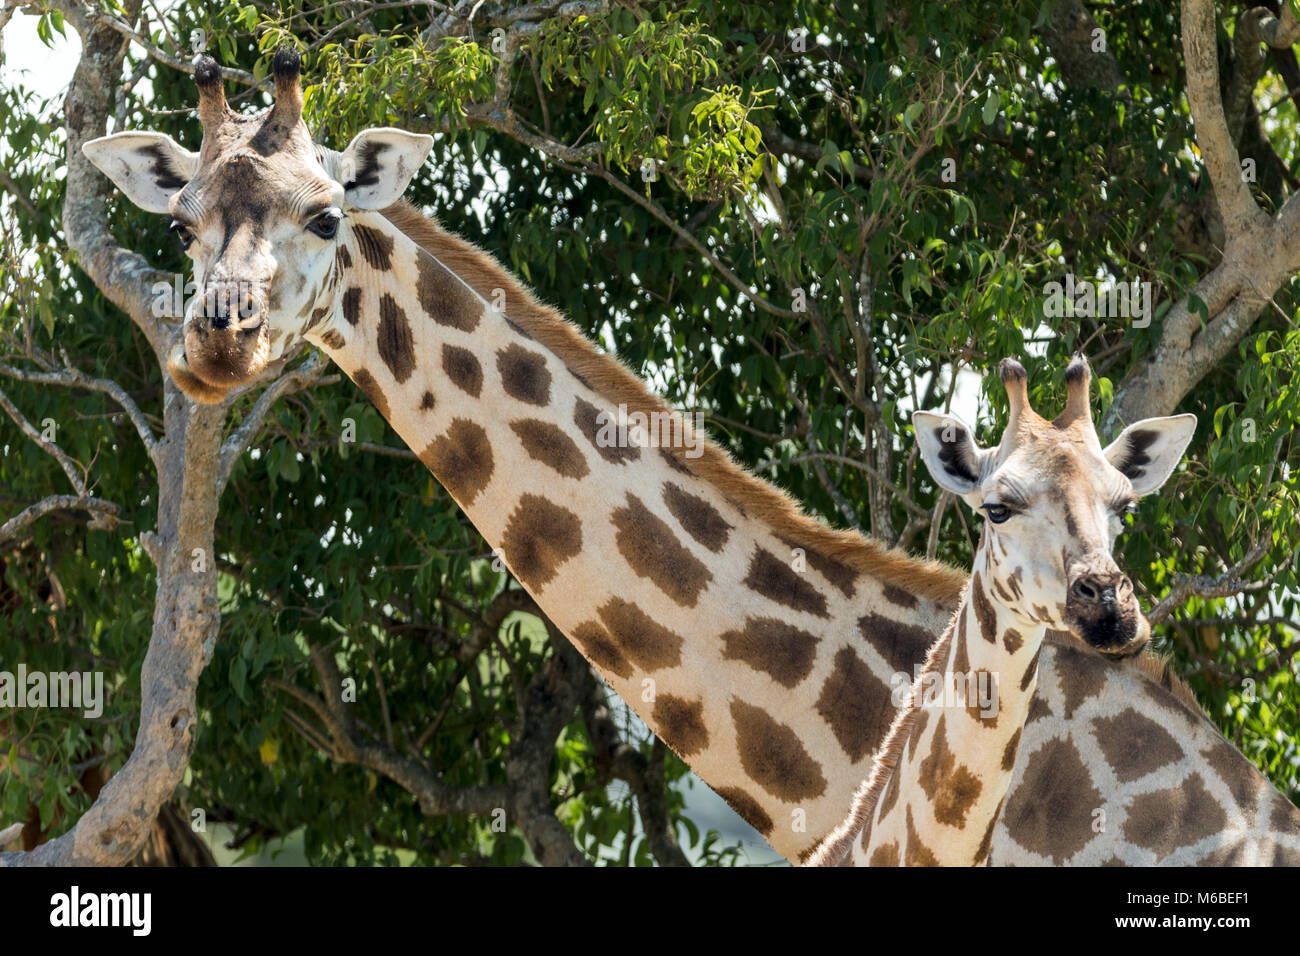 Mother and young Rothschild's giraffe 'Murchison's Falls National Park', Uganda, Africa - Stock Image